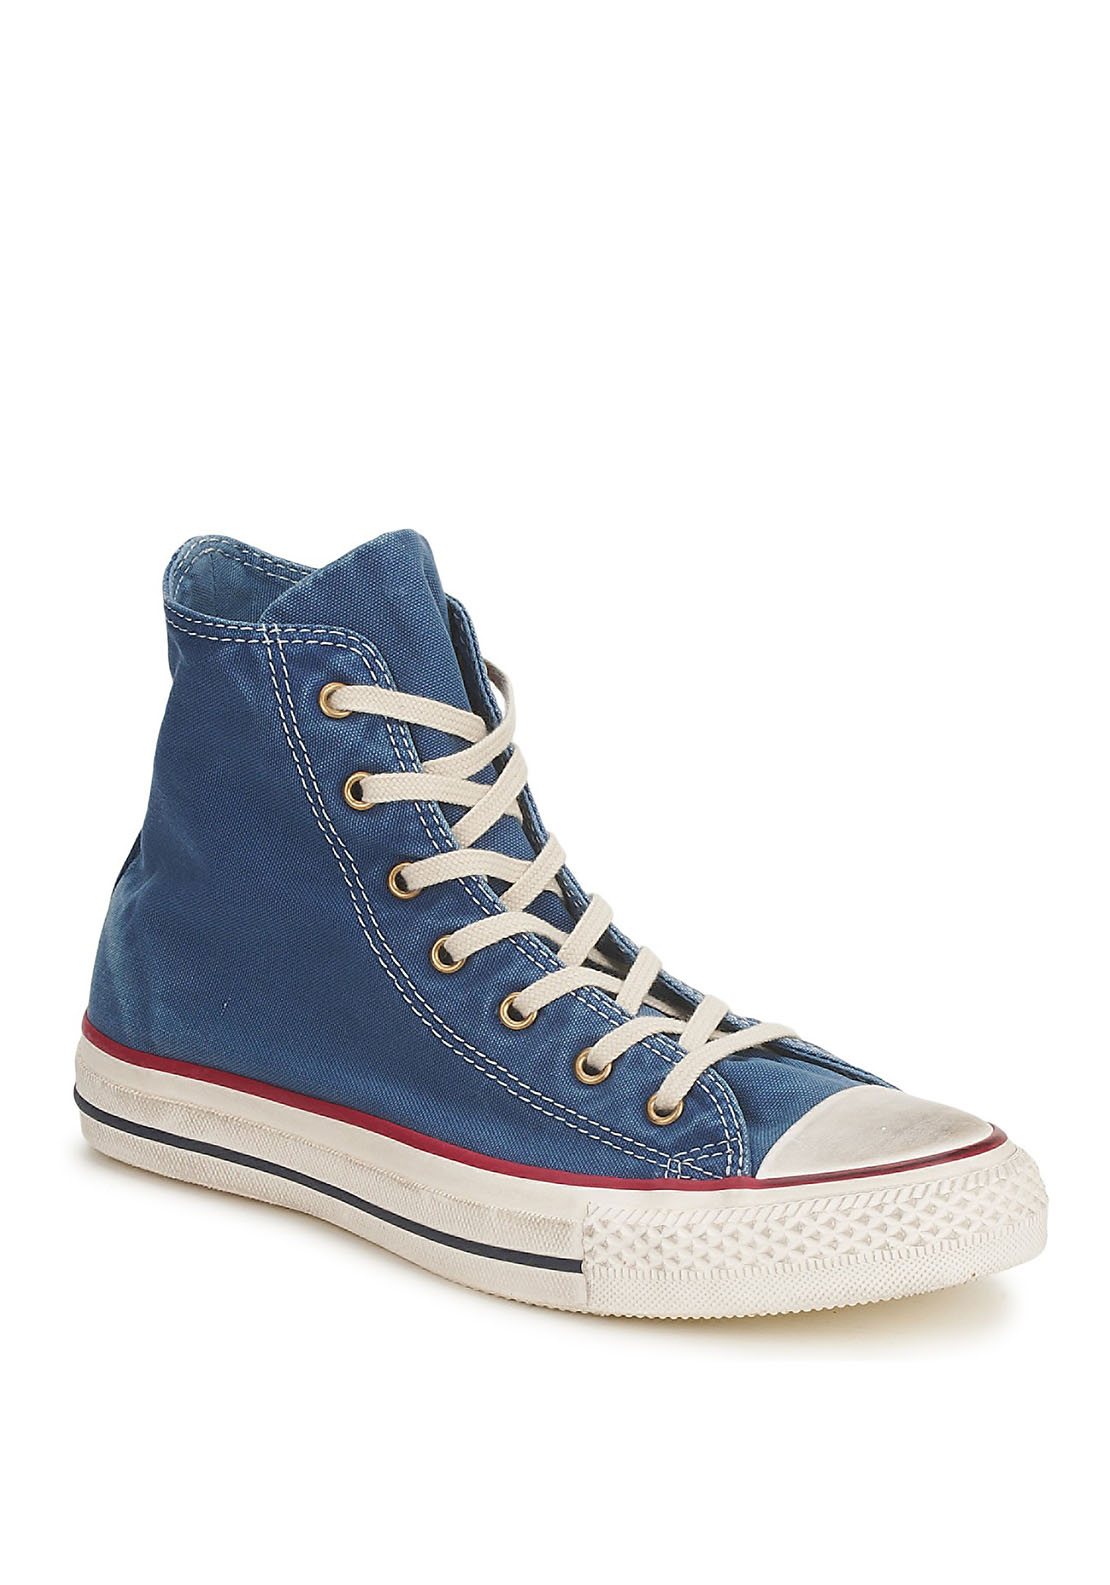 Converse Unisex Chuck Taylor Washed Trainers, Blue